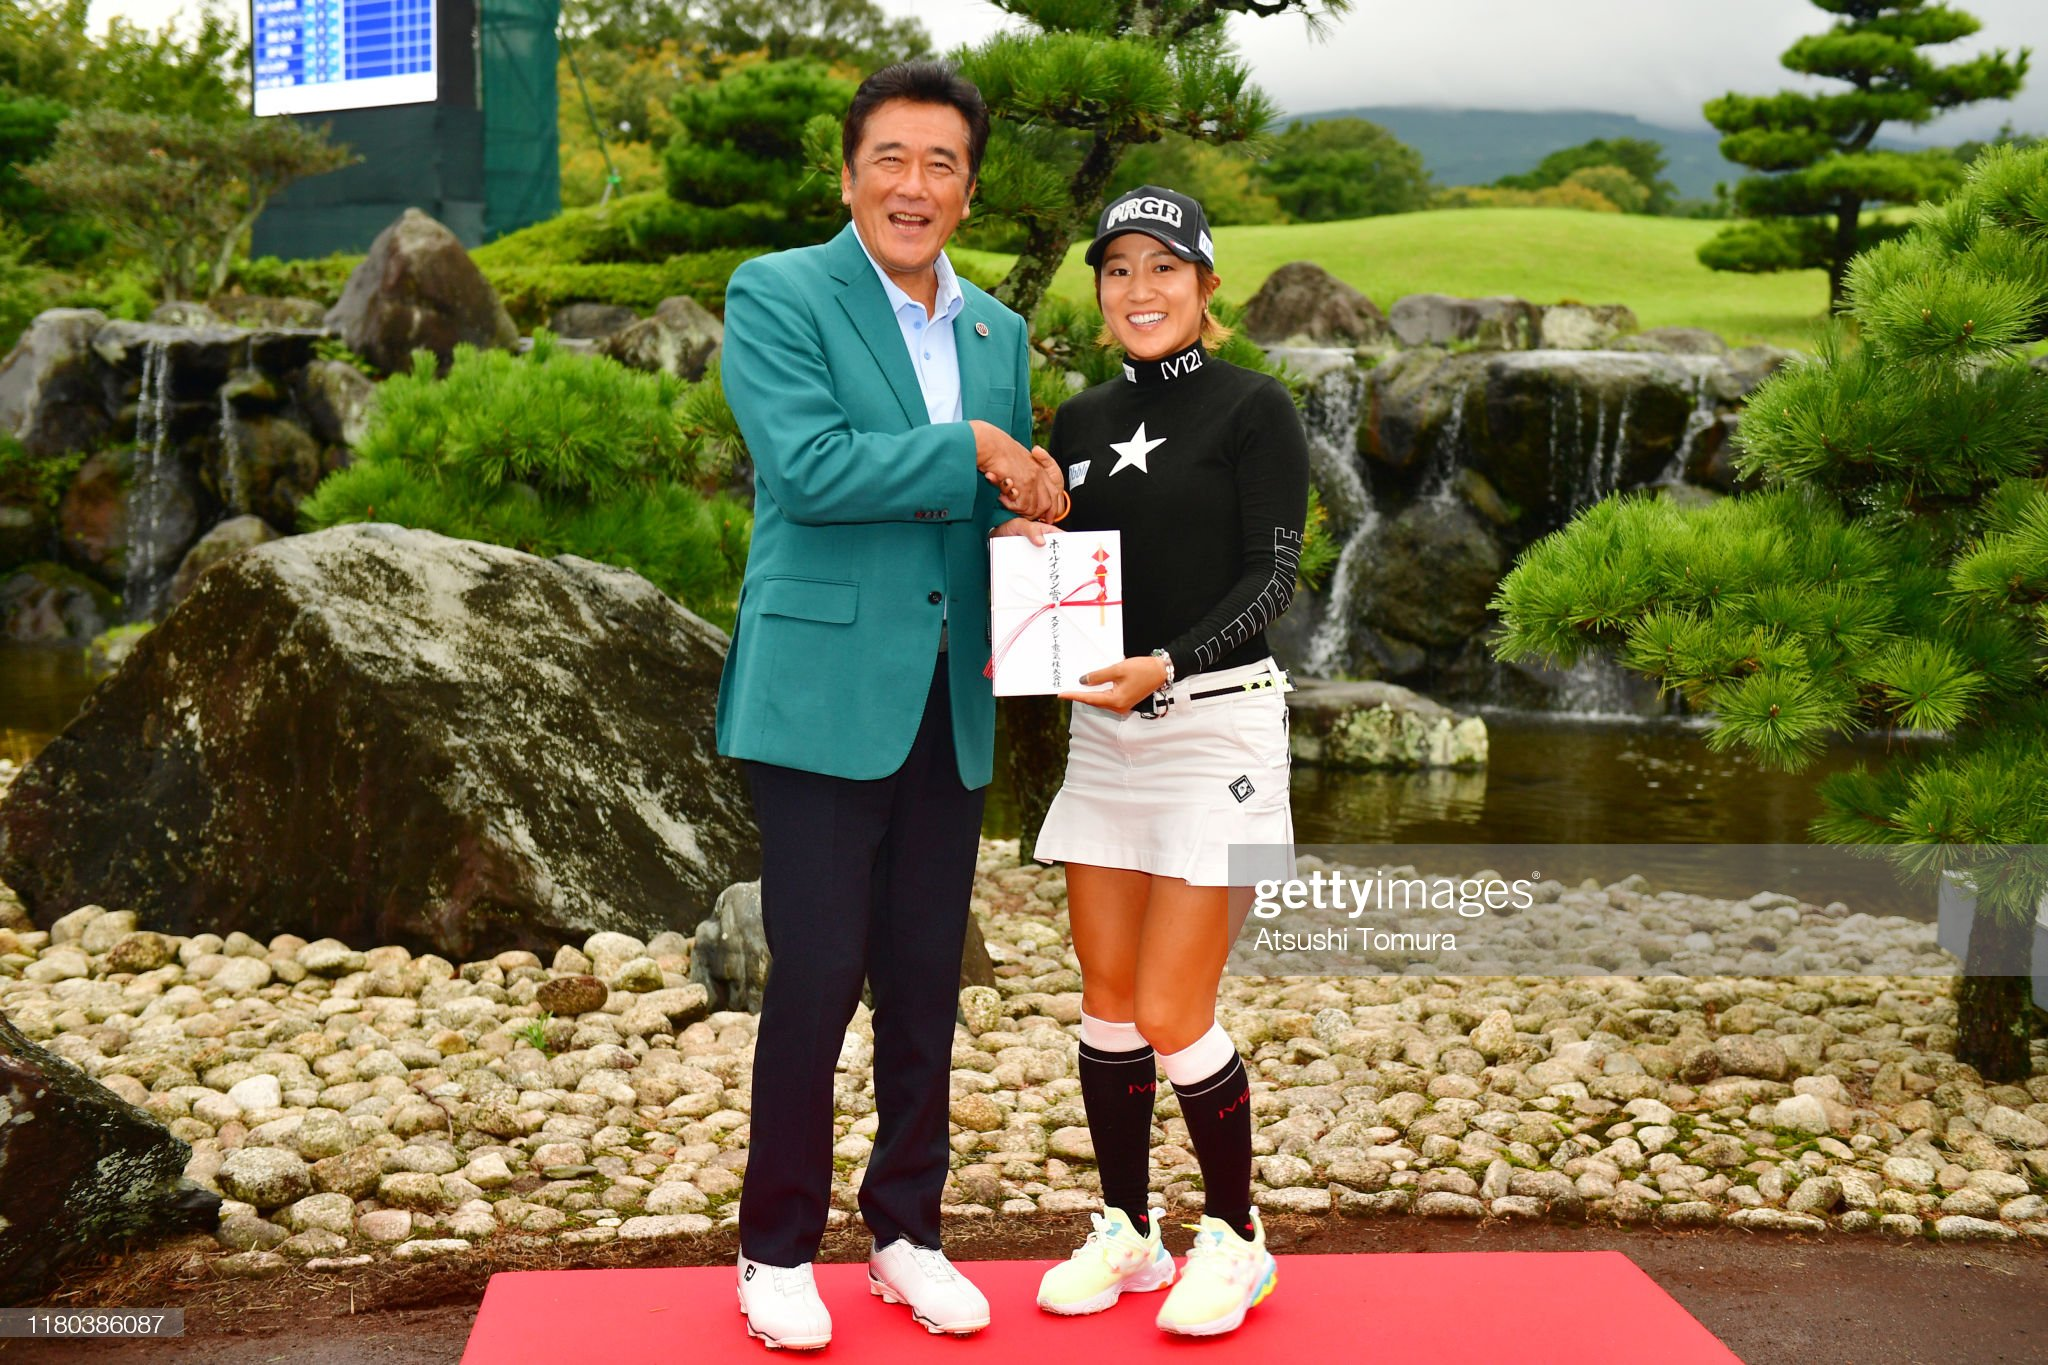 https://media.gettyimages.com/photos/asako-fujimoto-of-japan-shakes-hands-with-stanley-electric-co-ltd-picture-id1180386087?s=2048x2048